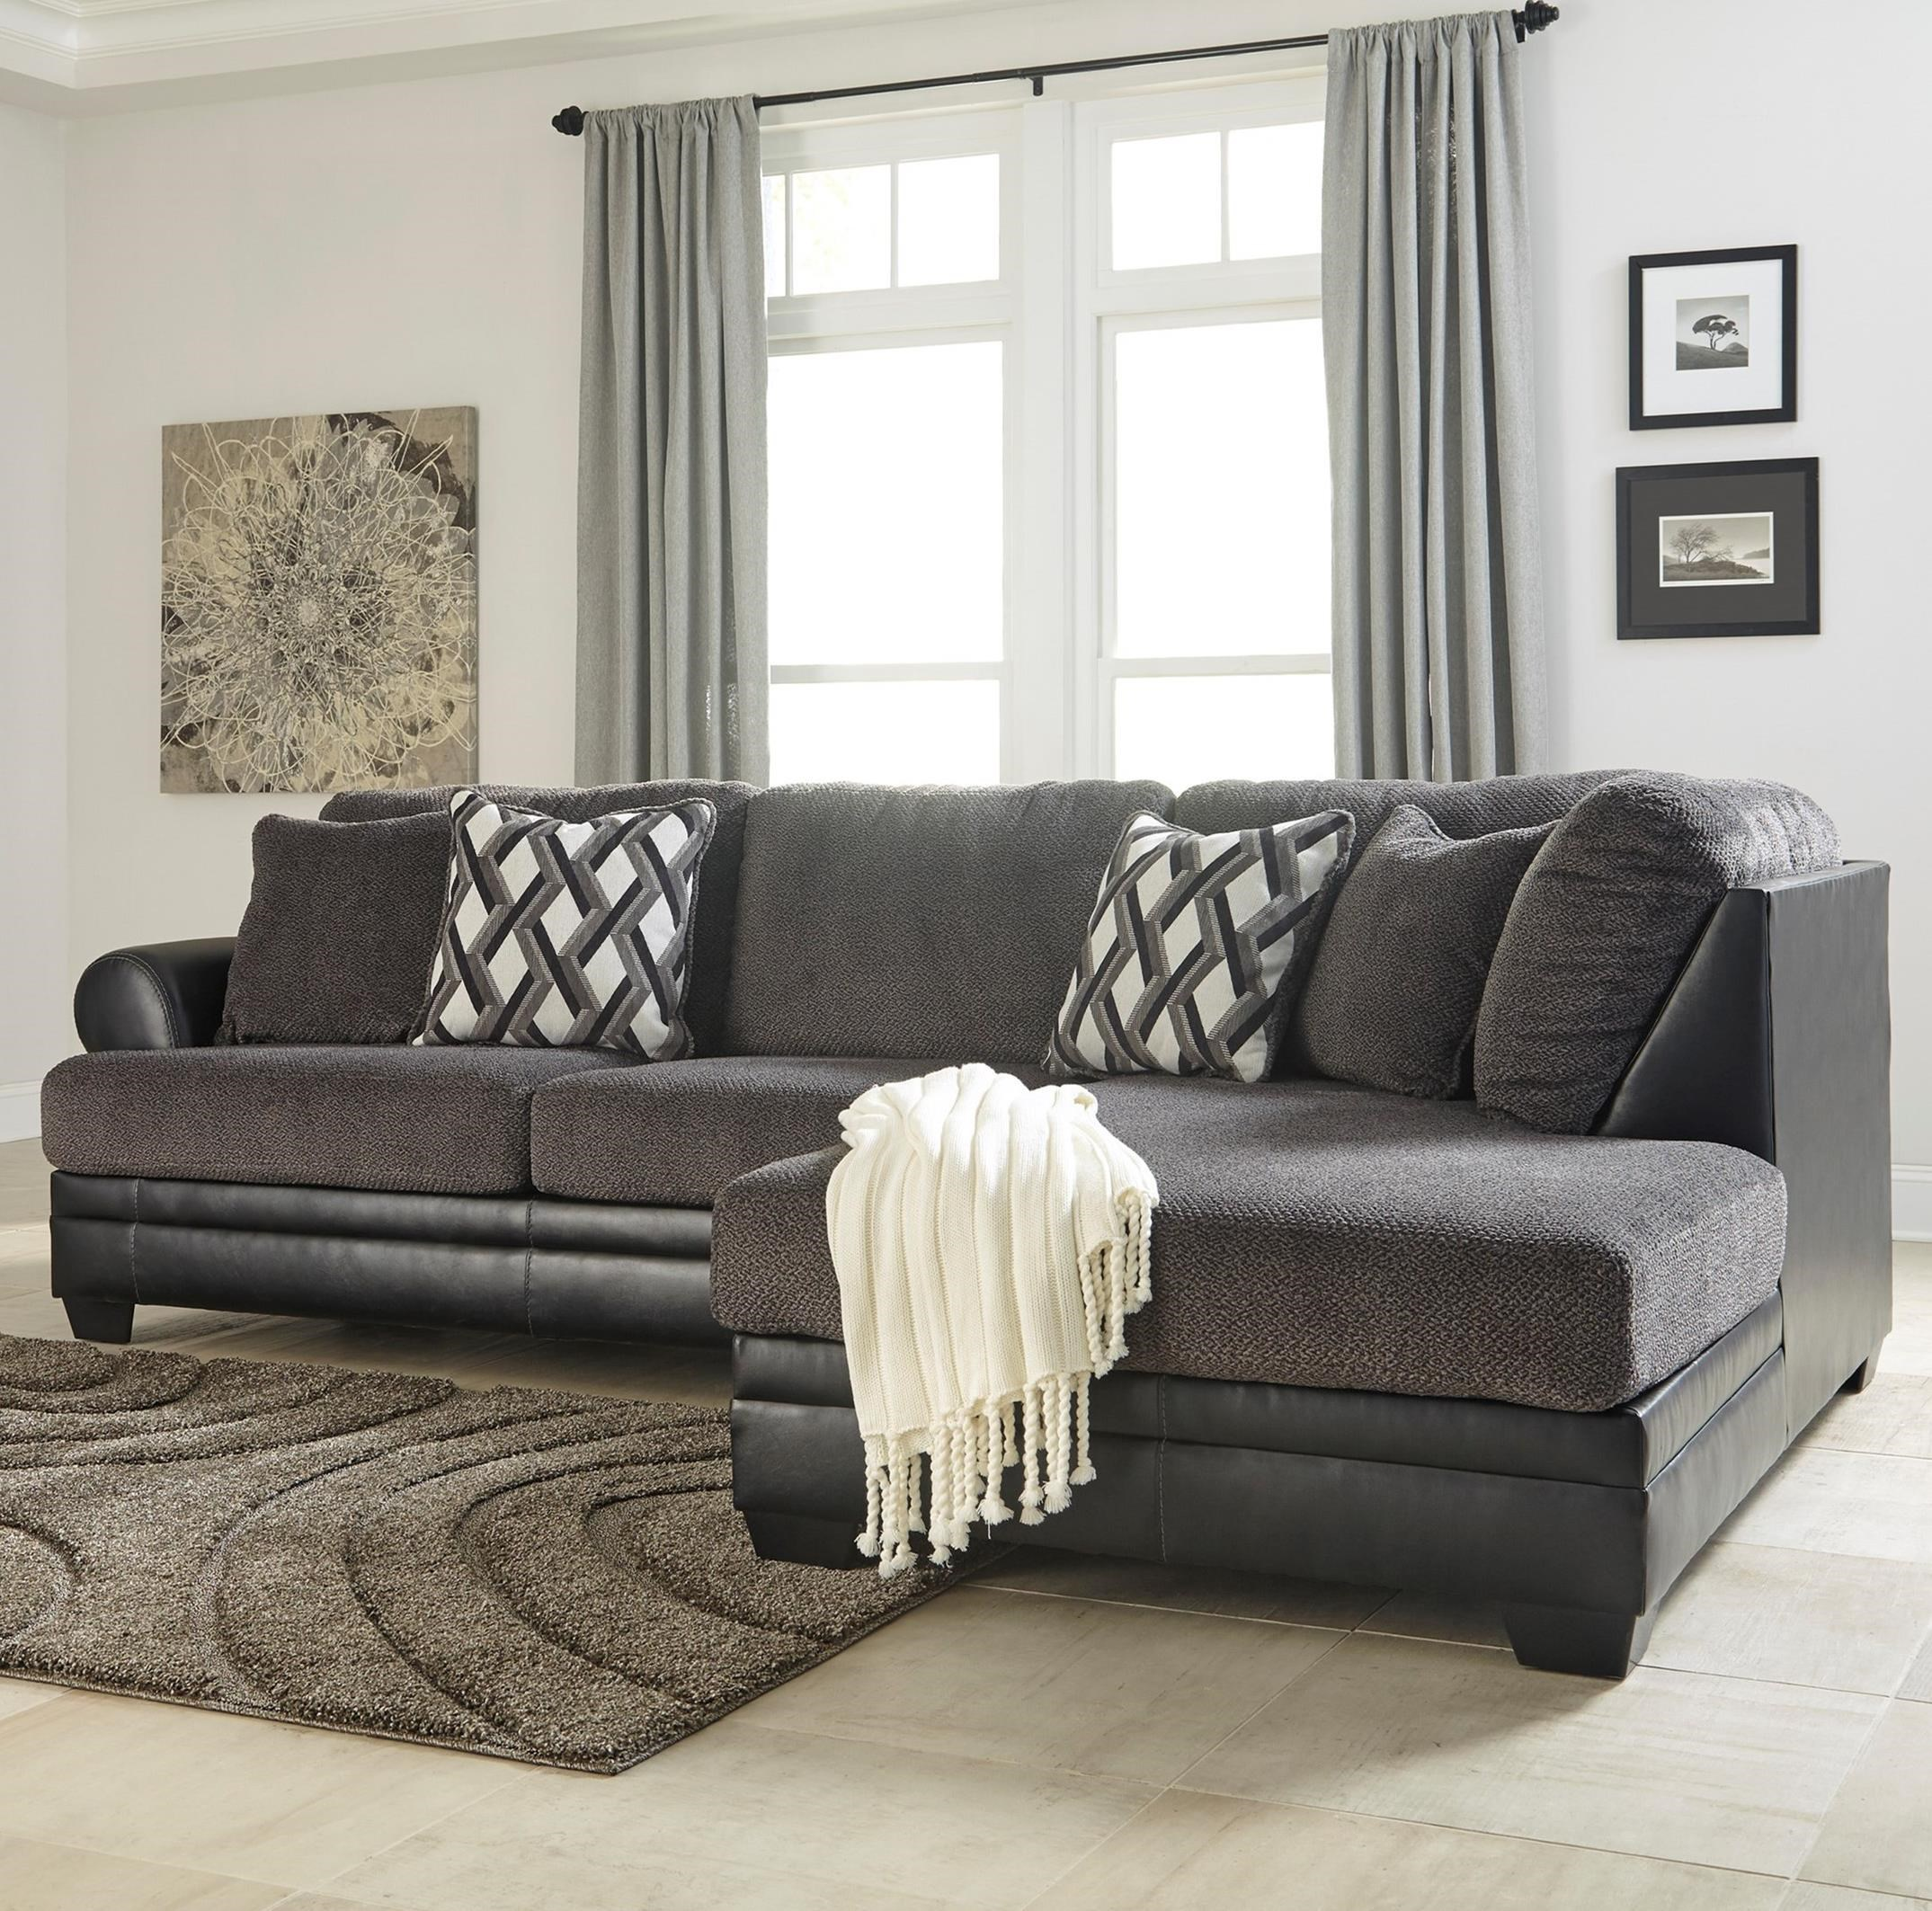 Benchcraft Kumasi 2-Piece Sectional with Right Chaise - Item Number: 3220266+17